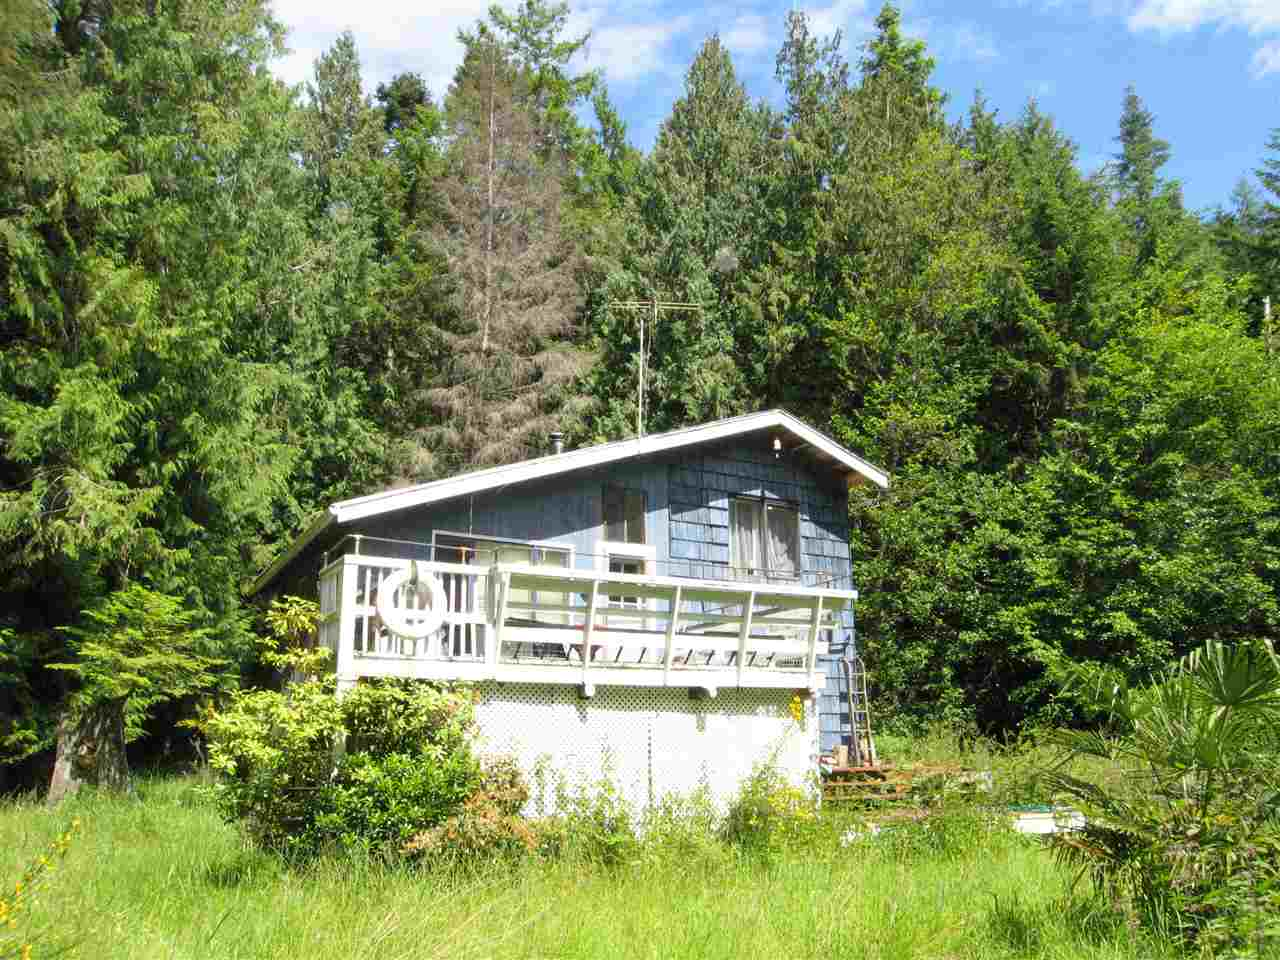 Sunny, private and affordable off-the-grid getaway on level 0.83 acre of land at Phillimore Point, which is a picturesque seaside village located on Galiano Island, below Mt Sutil. Property is connected to a community water system and has access to a protected community dock. Propane is used for cooking and a wood stove for heat. Septic system installed. Several swimming beaches nearby. Phillimore Point is accessible via private boat from Galiano?s Montague Harbour or from Ganges on Saltspring Island. If you look for peace and quiet, a simple healthy lifestyle, Phillimore Point is an oasis for off-grid living! Come over and check it out!